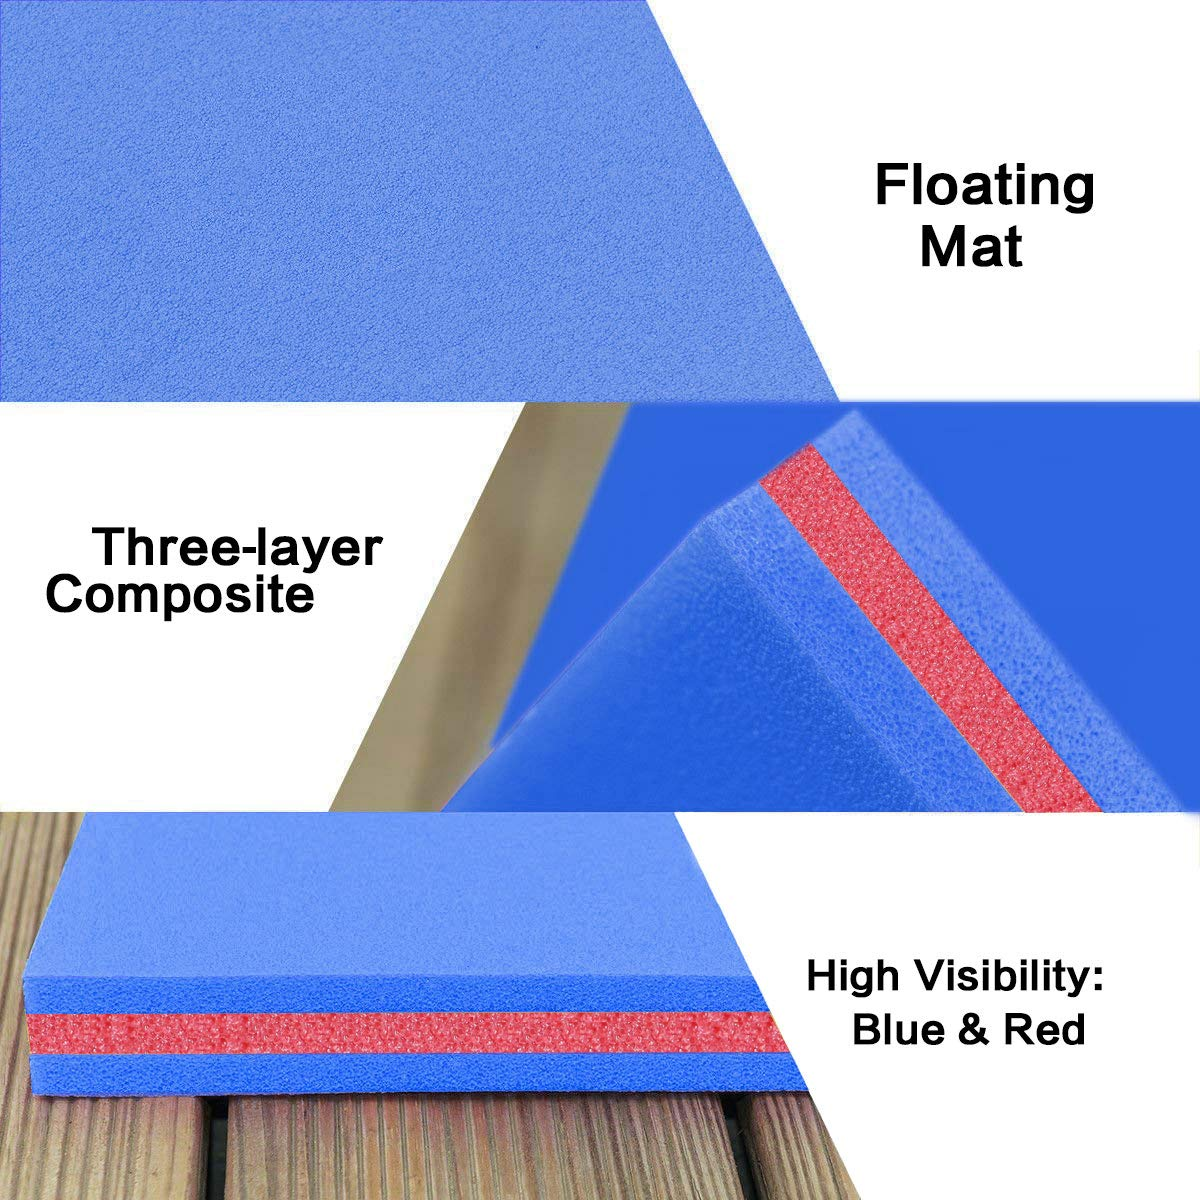 Outroad Floating Mat 12' X 6' - Recreational Floating Foam Pad Adults Kids (Blue)- Lily Pad Used in Ocean/Lake by OUTROAD OUTDOOR CAMPING GARDEN PATIO (Image #6)